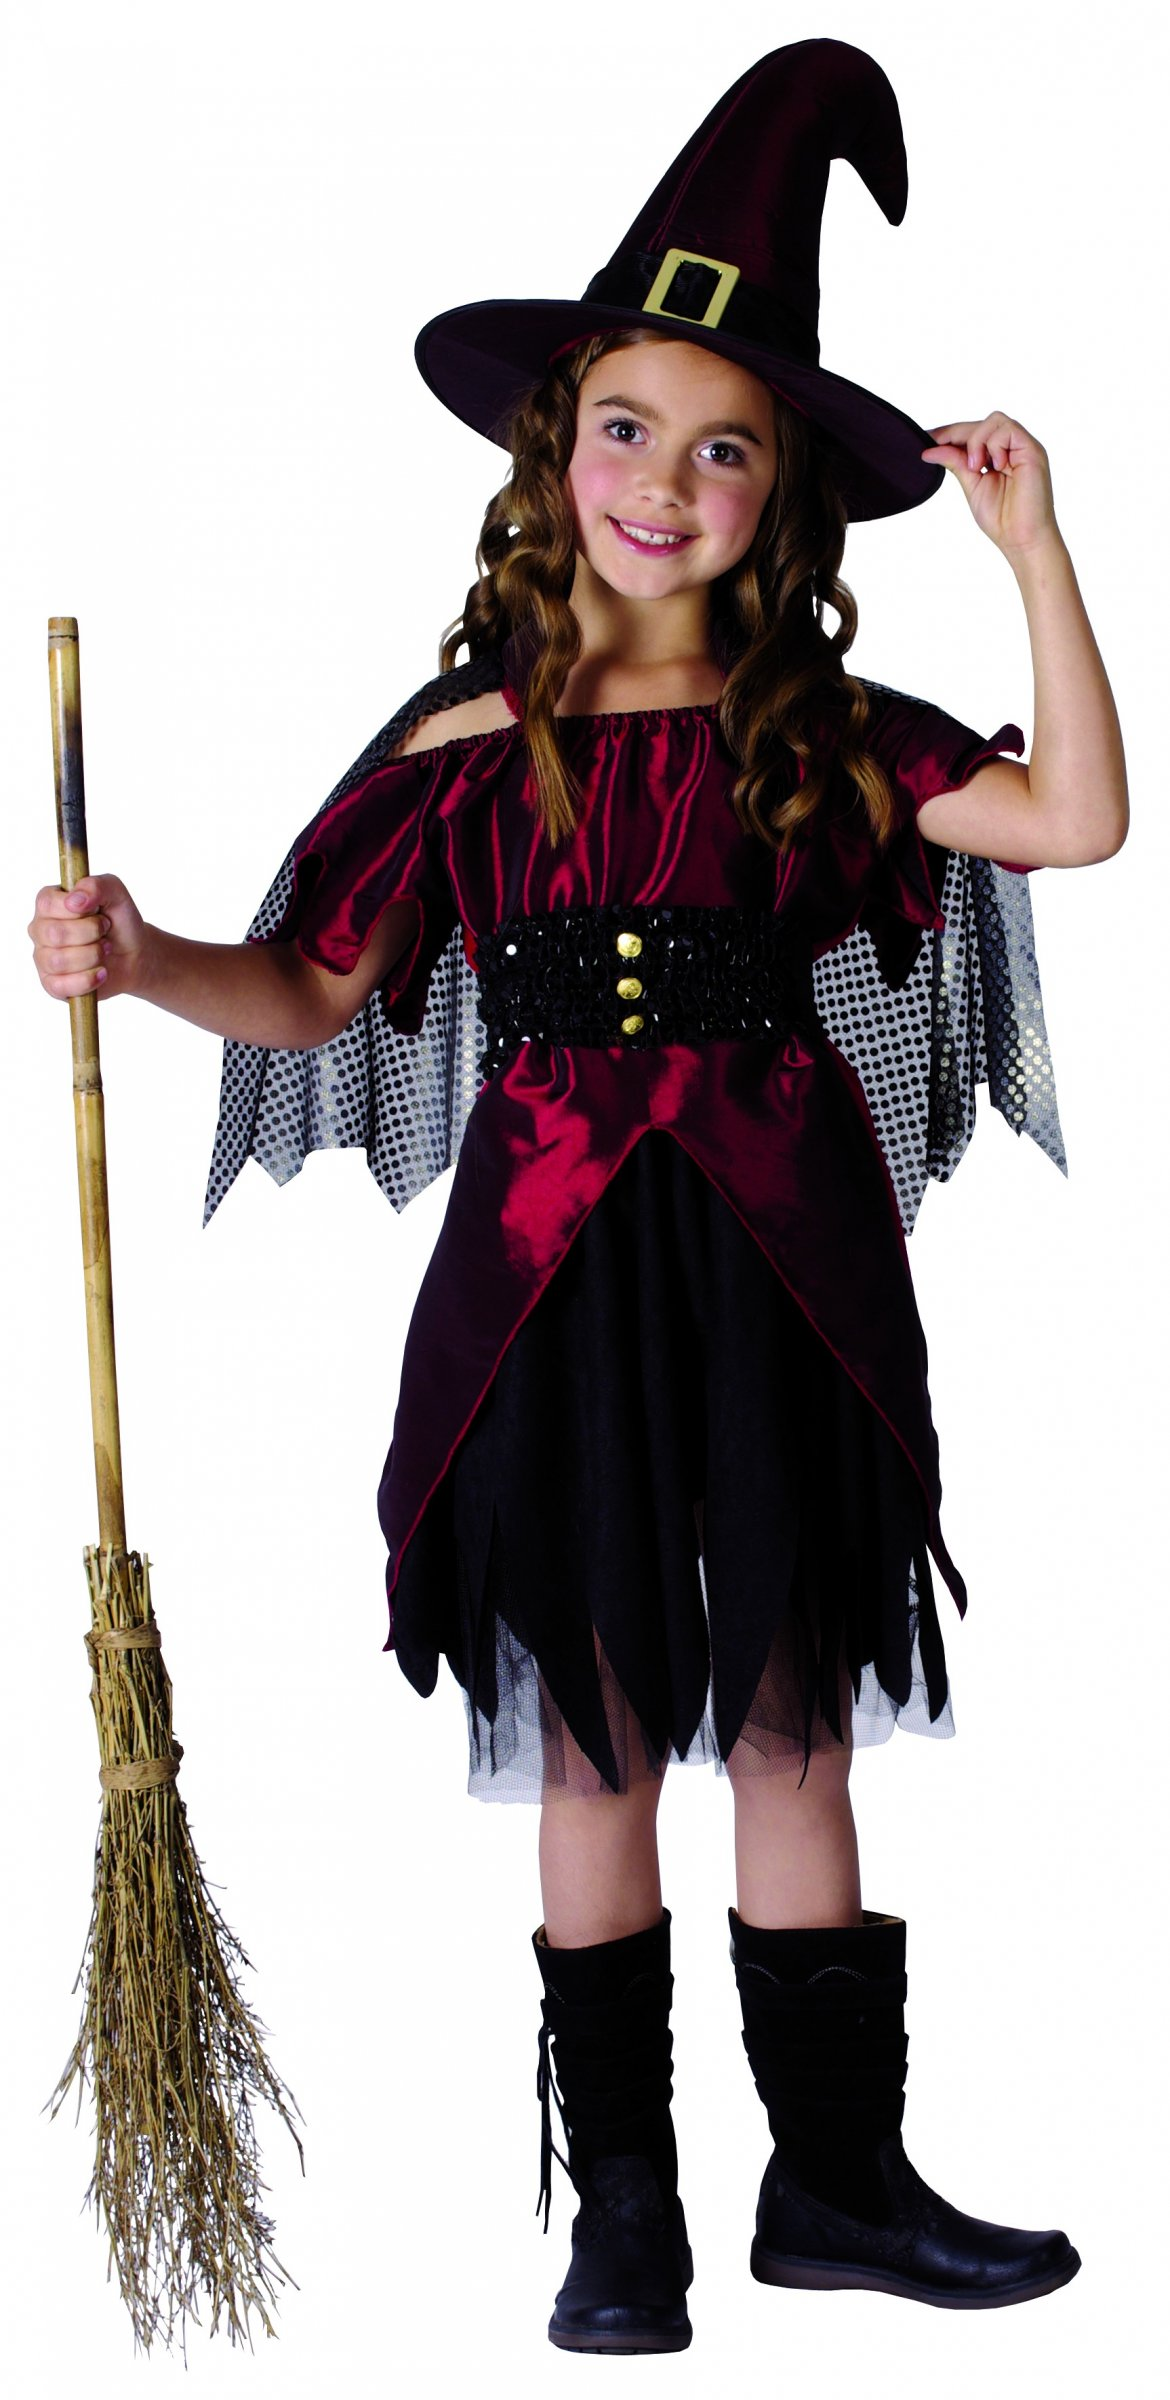 D guisement sorci re fille halloween - Deguisement halloween enfant fille ...